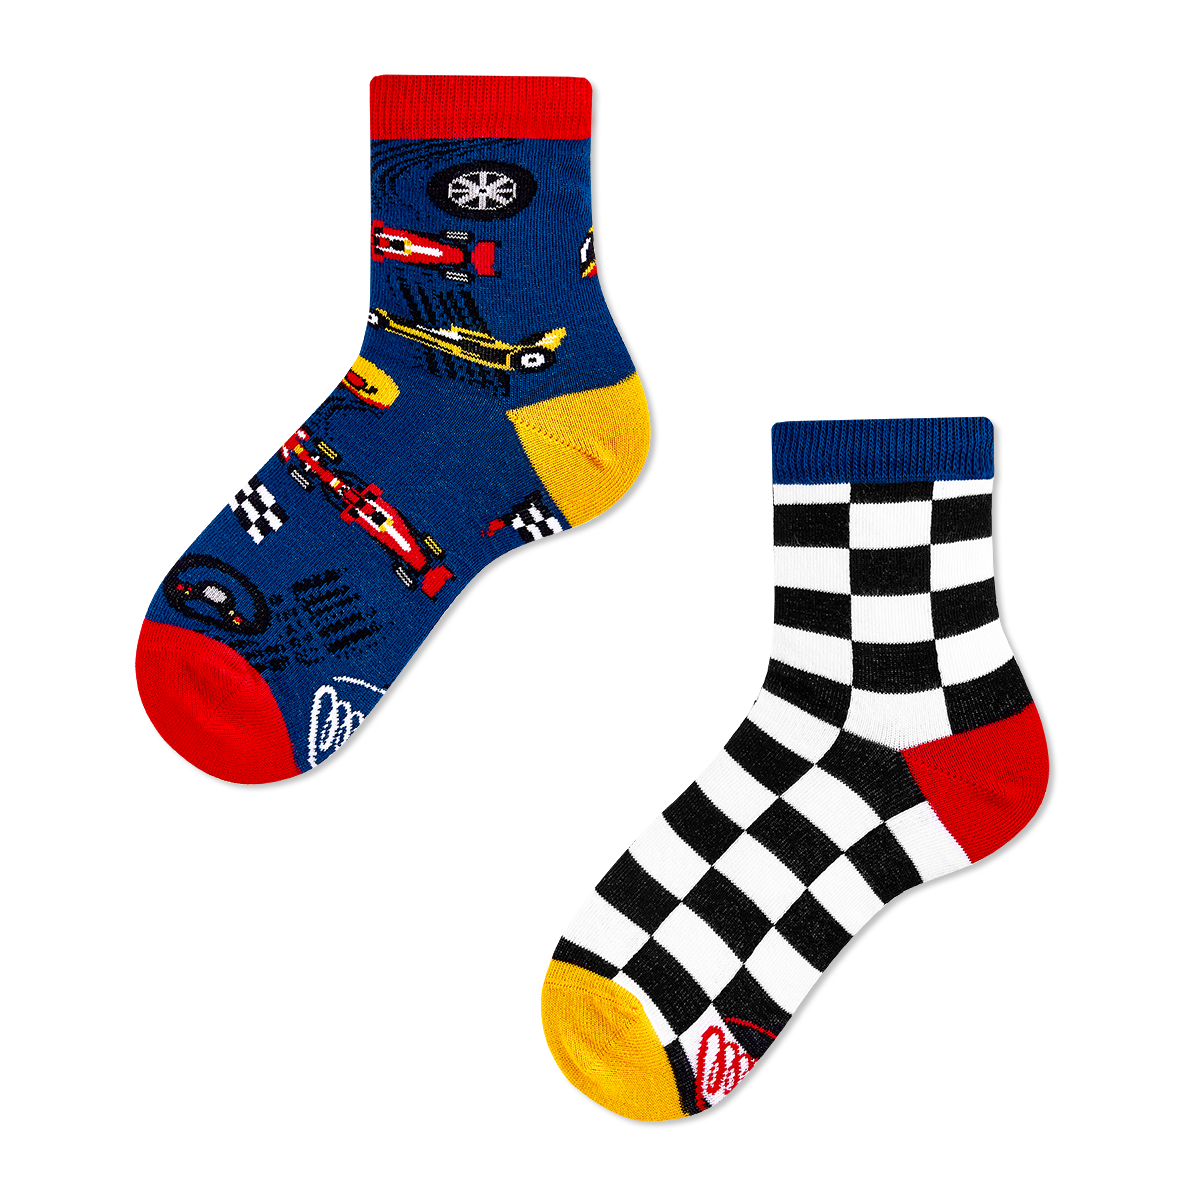 Calcetines_formula_racing_the_socks_closet